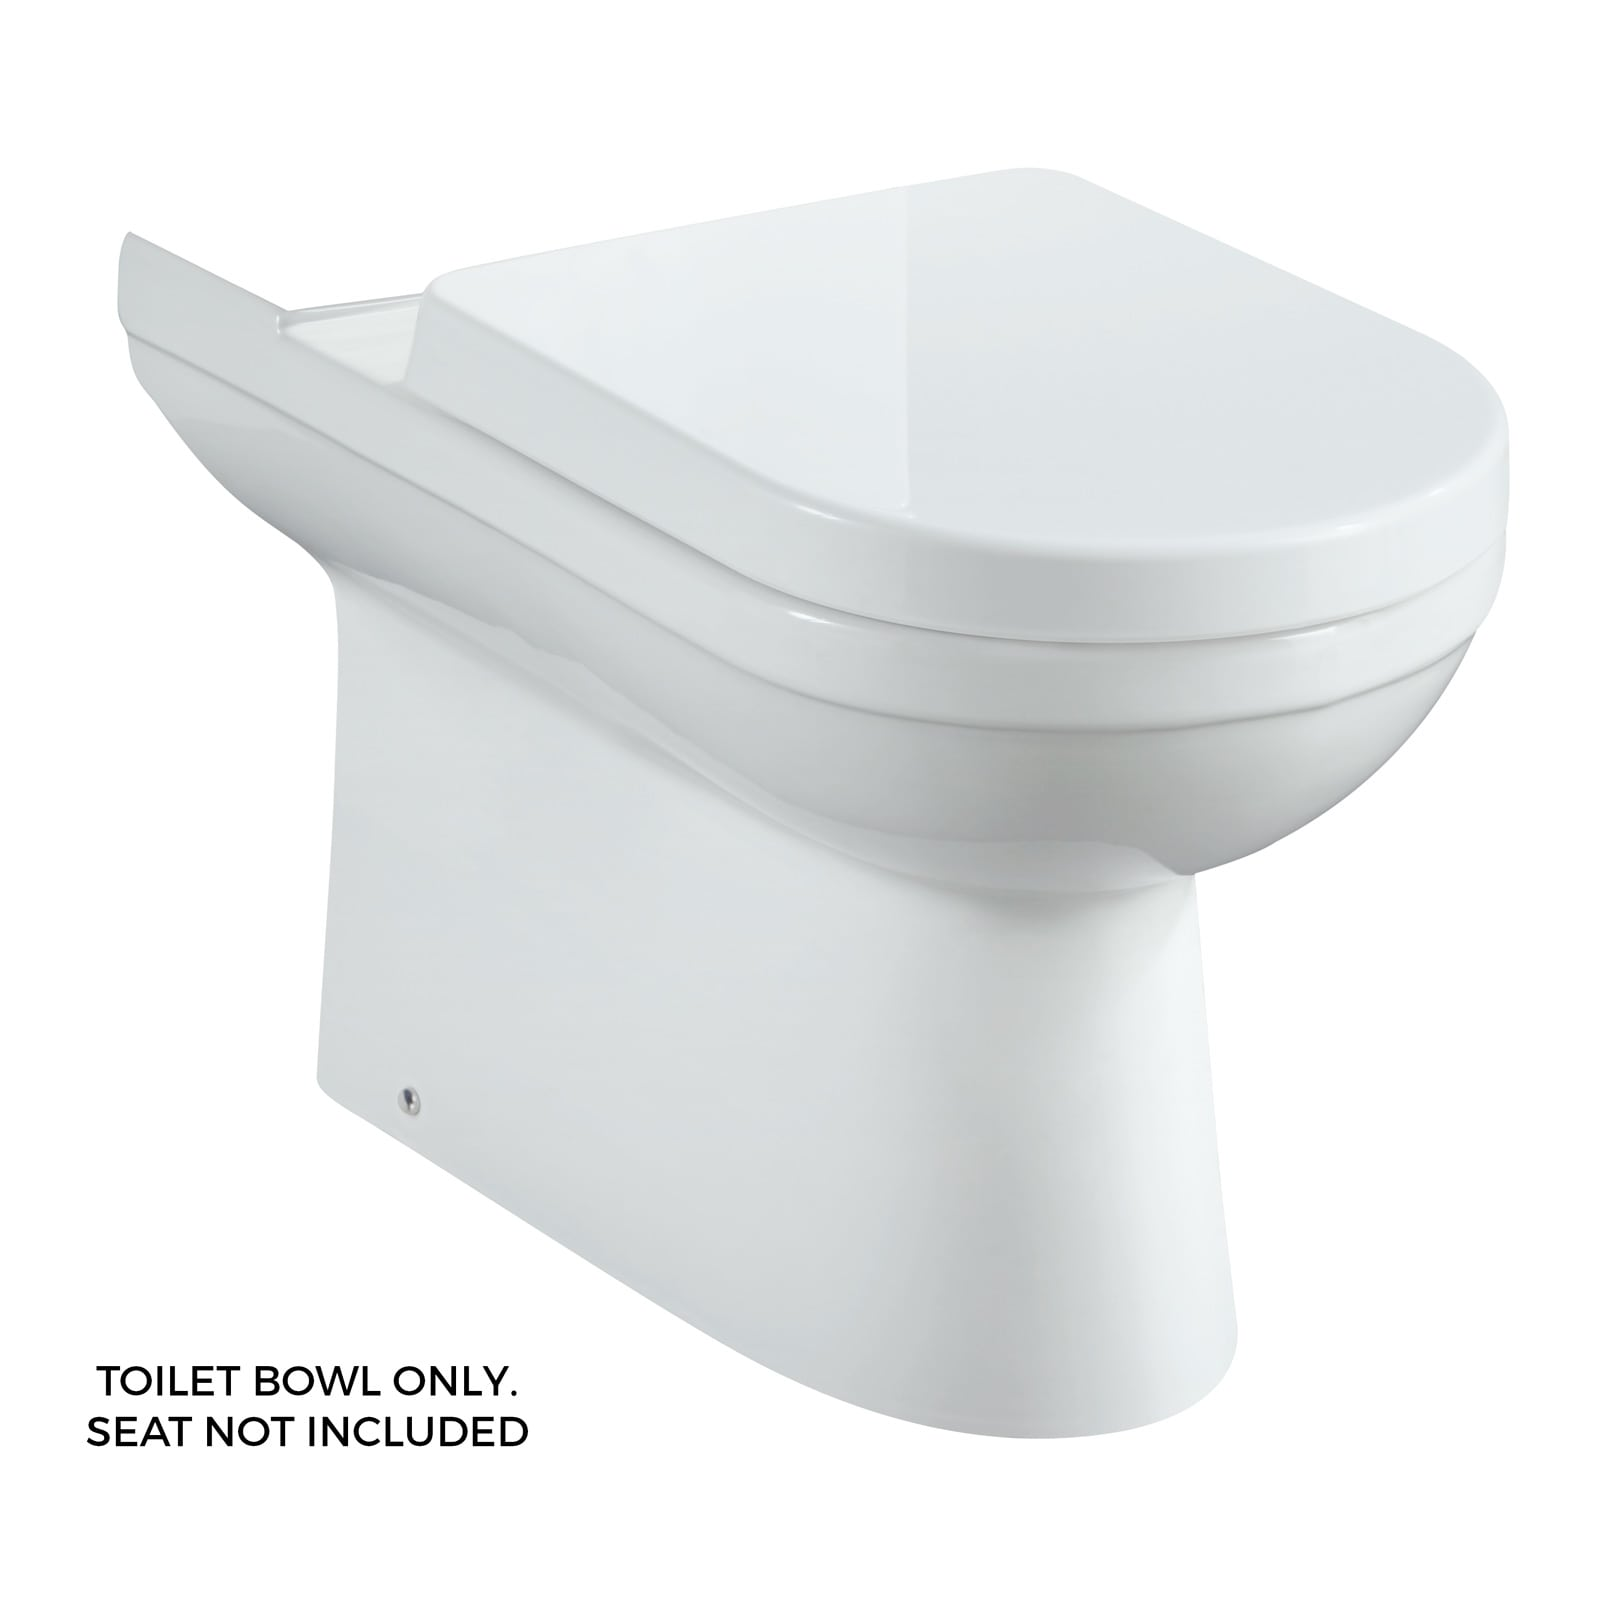 Mirabelle MIRML240WH White Milazzo Toilet Bowl Only - Faucet.com